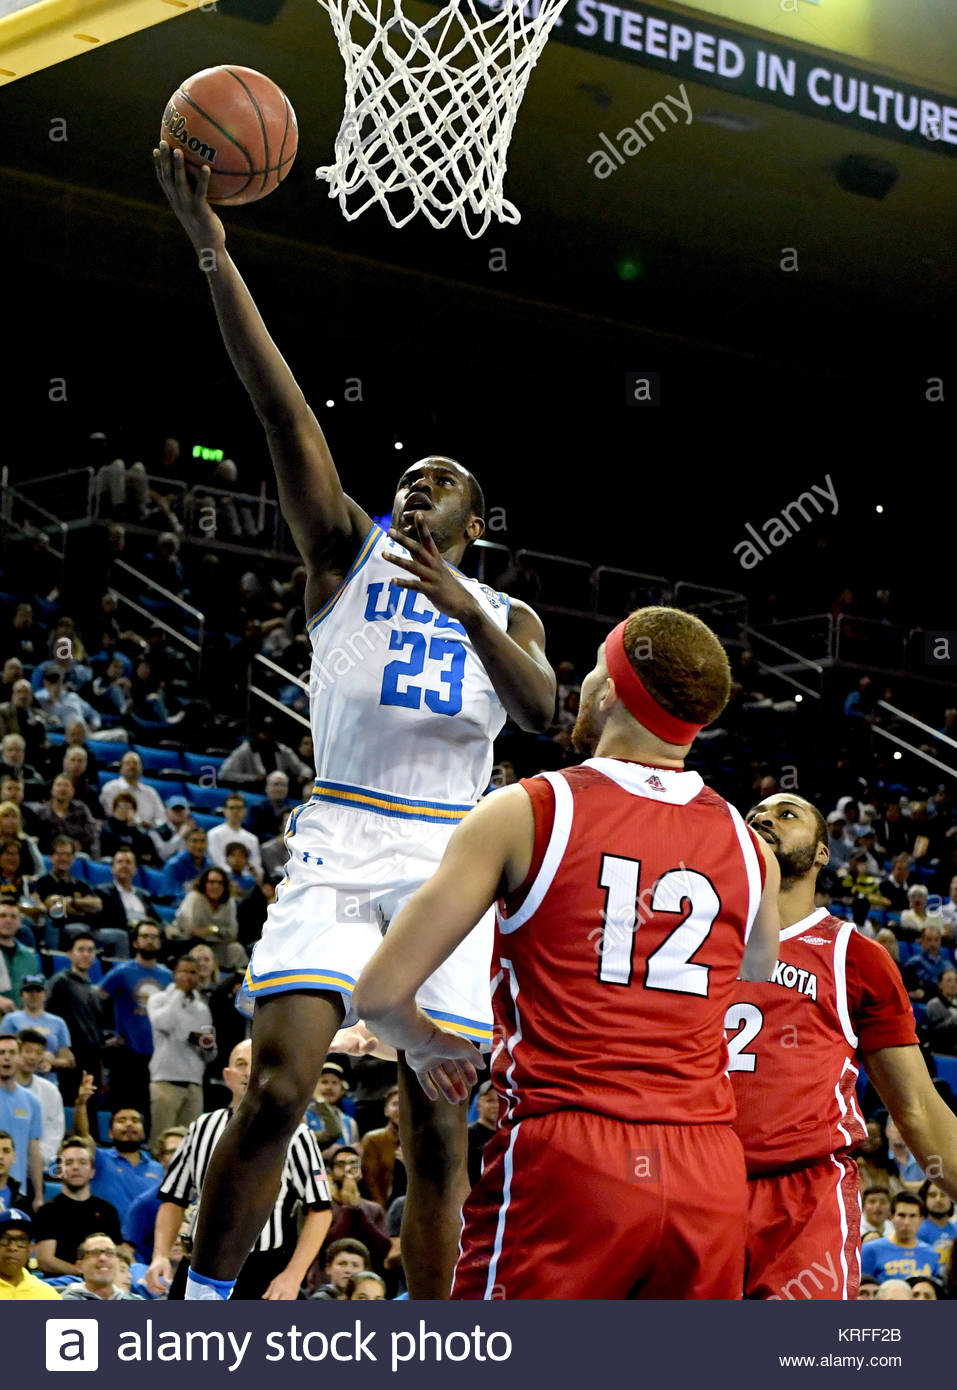 Westwood, California, USA. 19th Dec, 2017. UCLA Bruins guard Prince Ali (23) drives to the basket against South - Stock Image